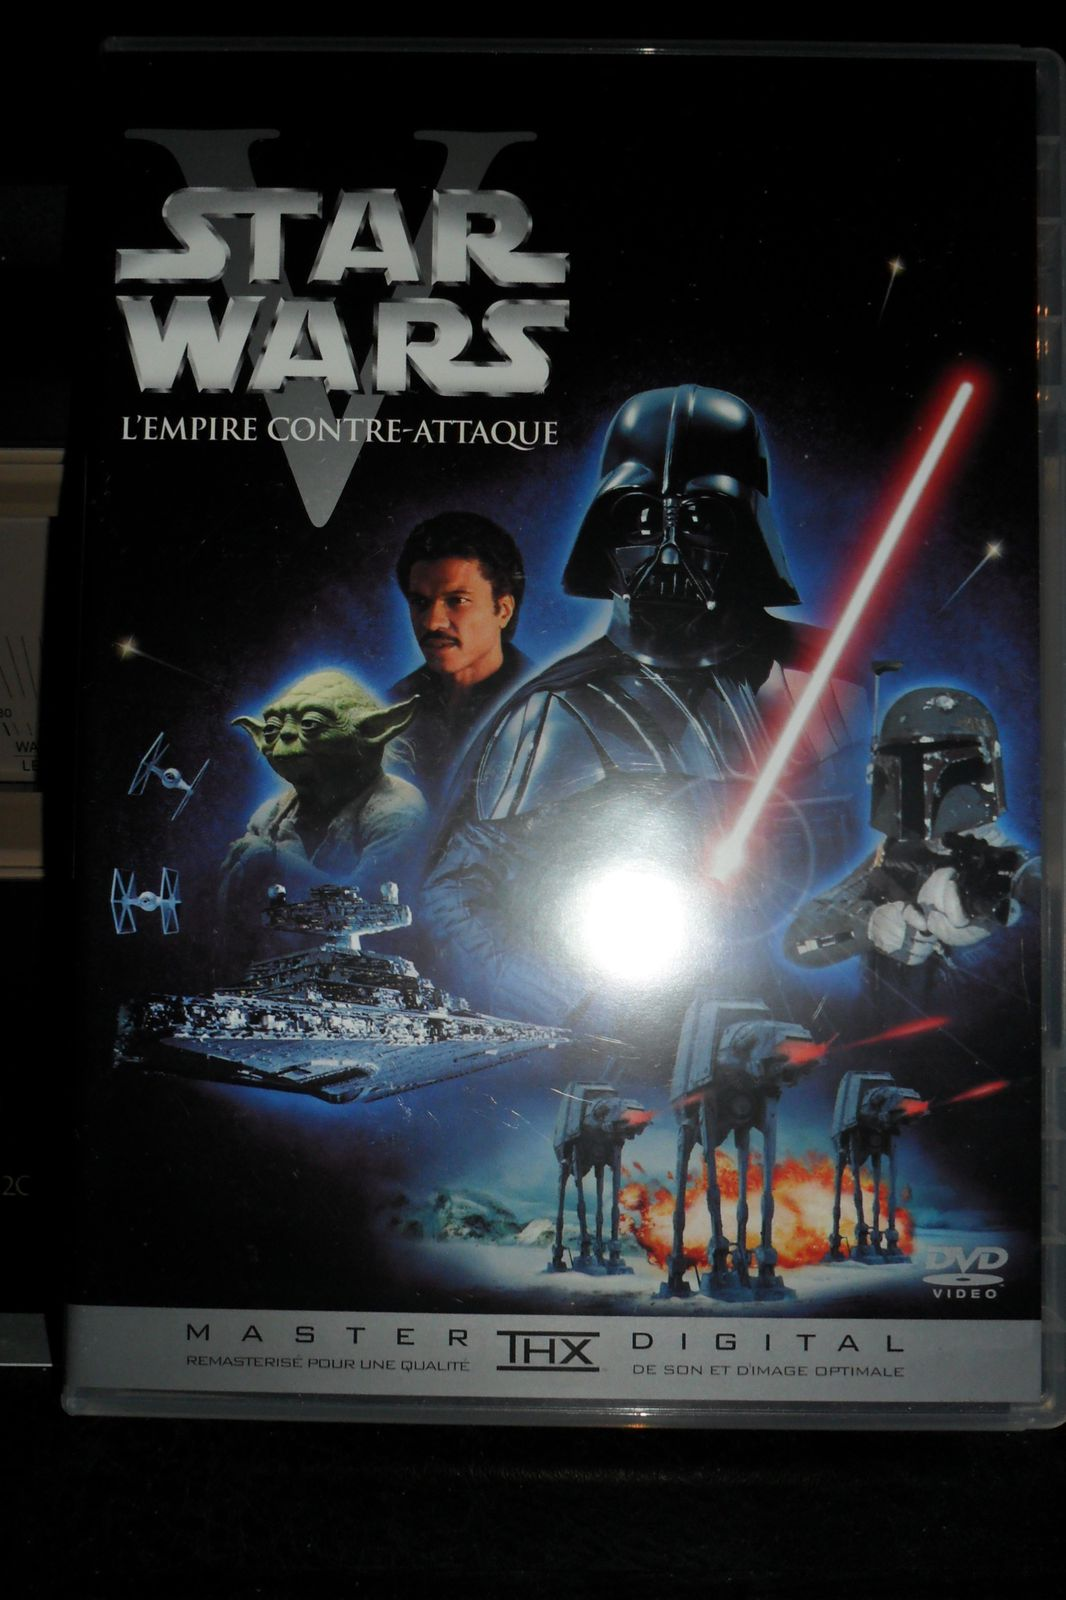 http://idata.over-blog.com/3/18/35/93/jano/film-star-wars/SAM_0004.JPG